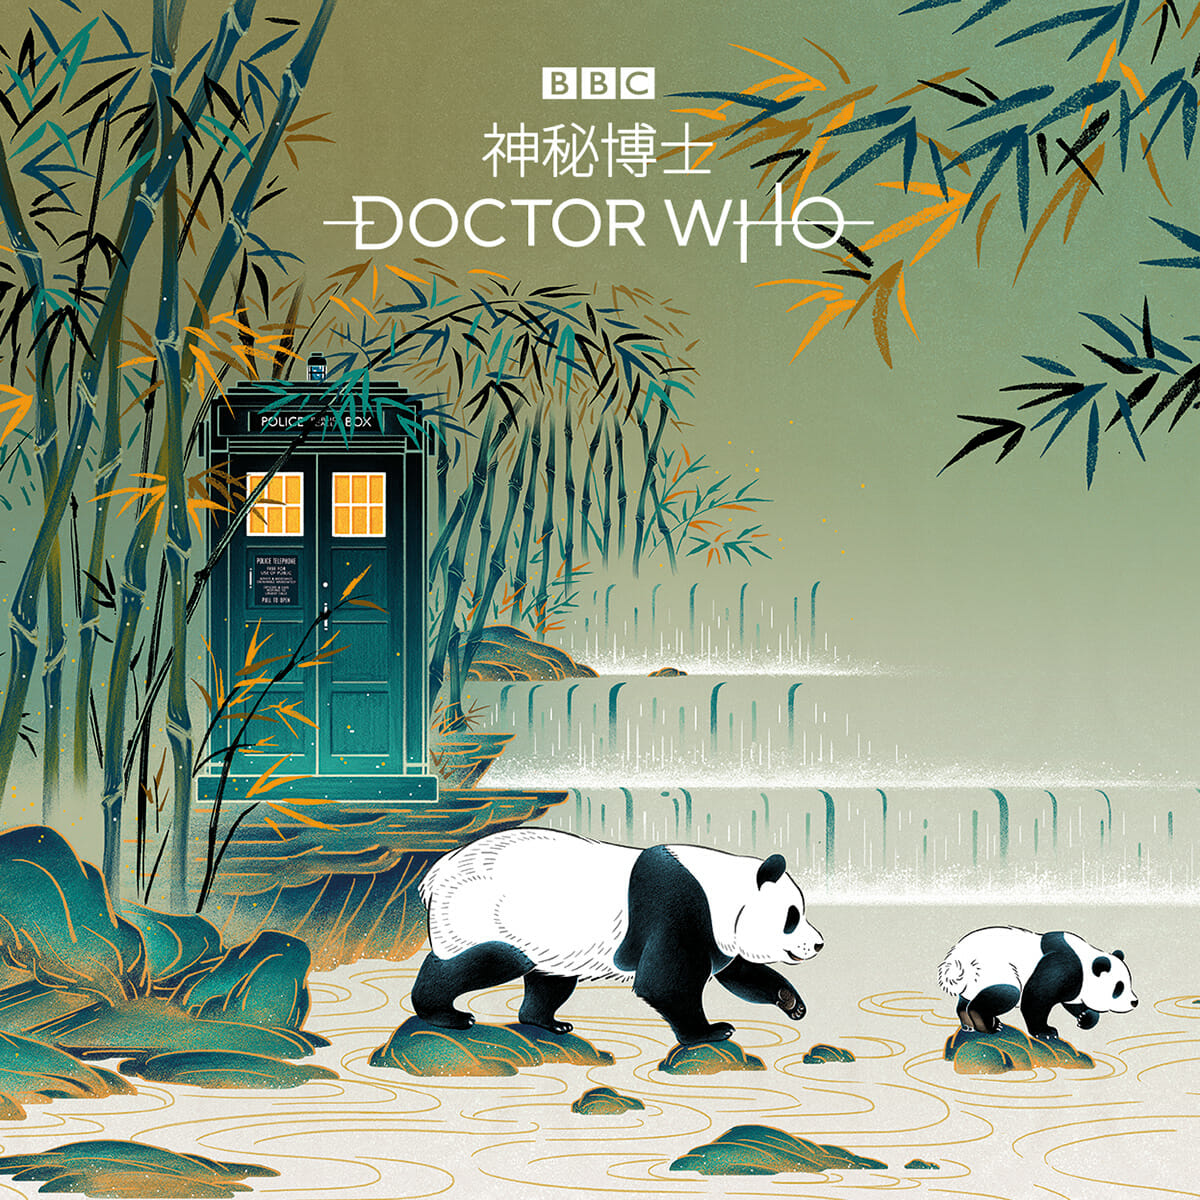 Doctor Who in China by Feifei Ruan